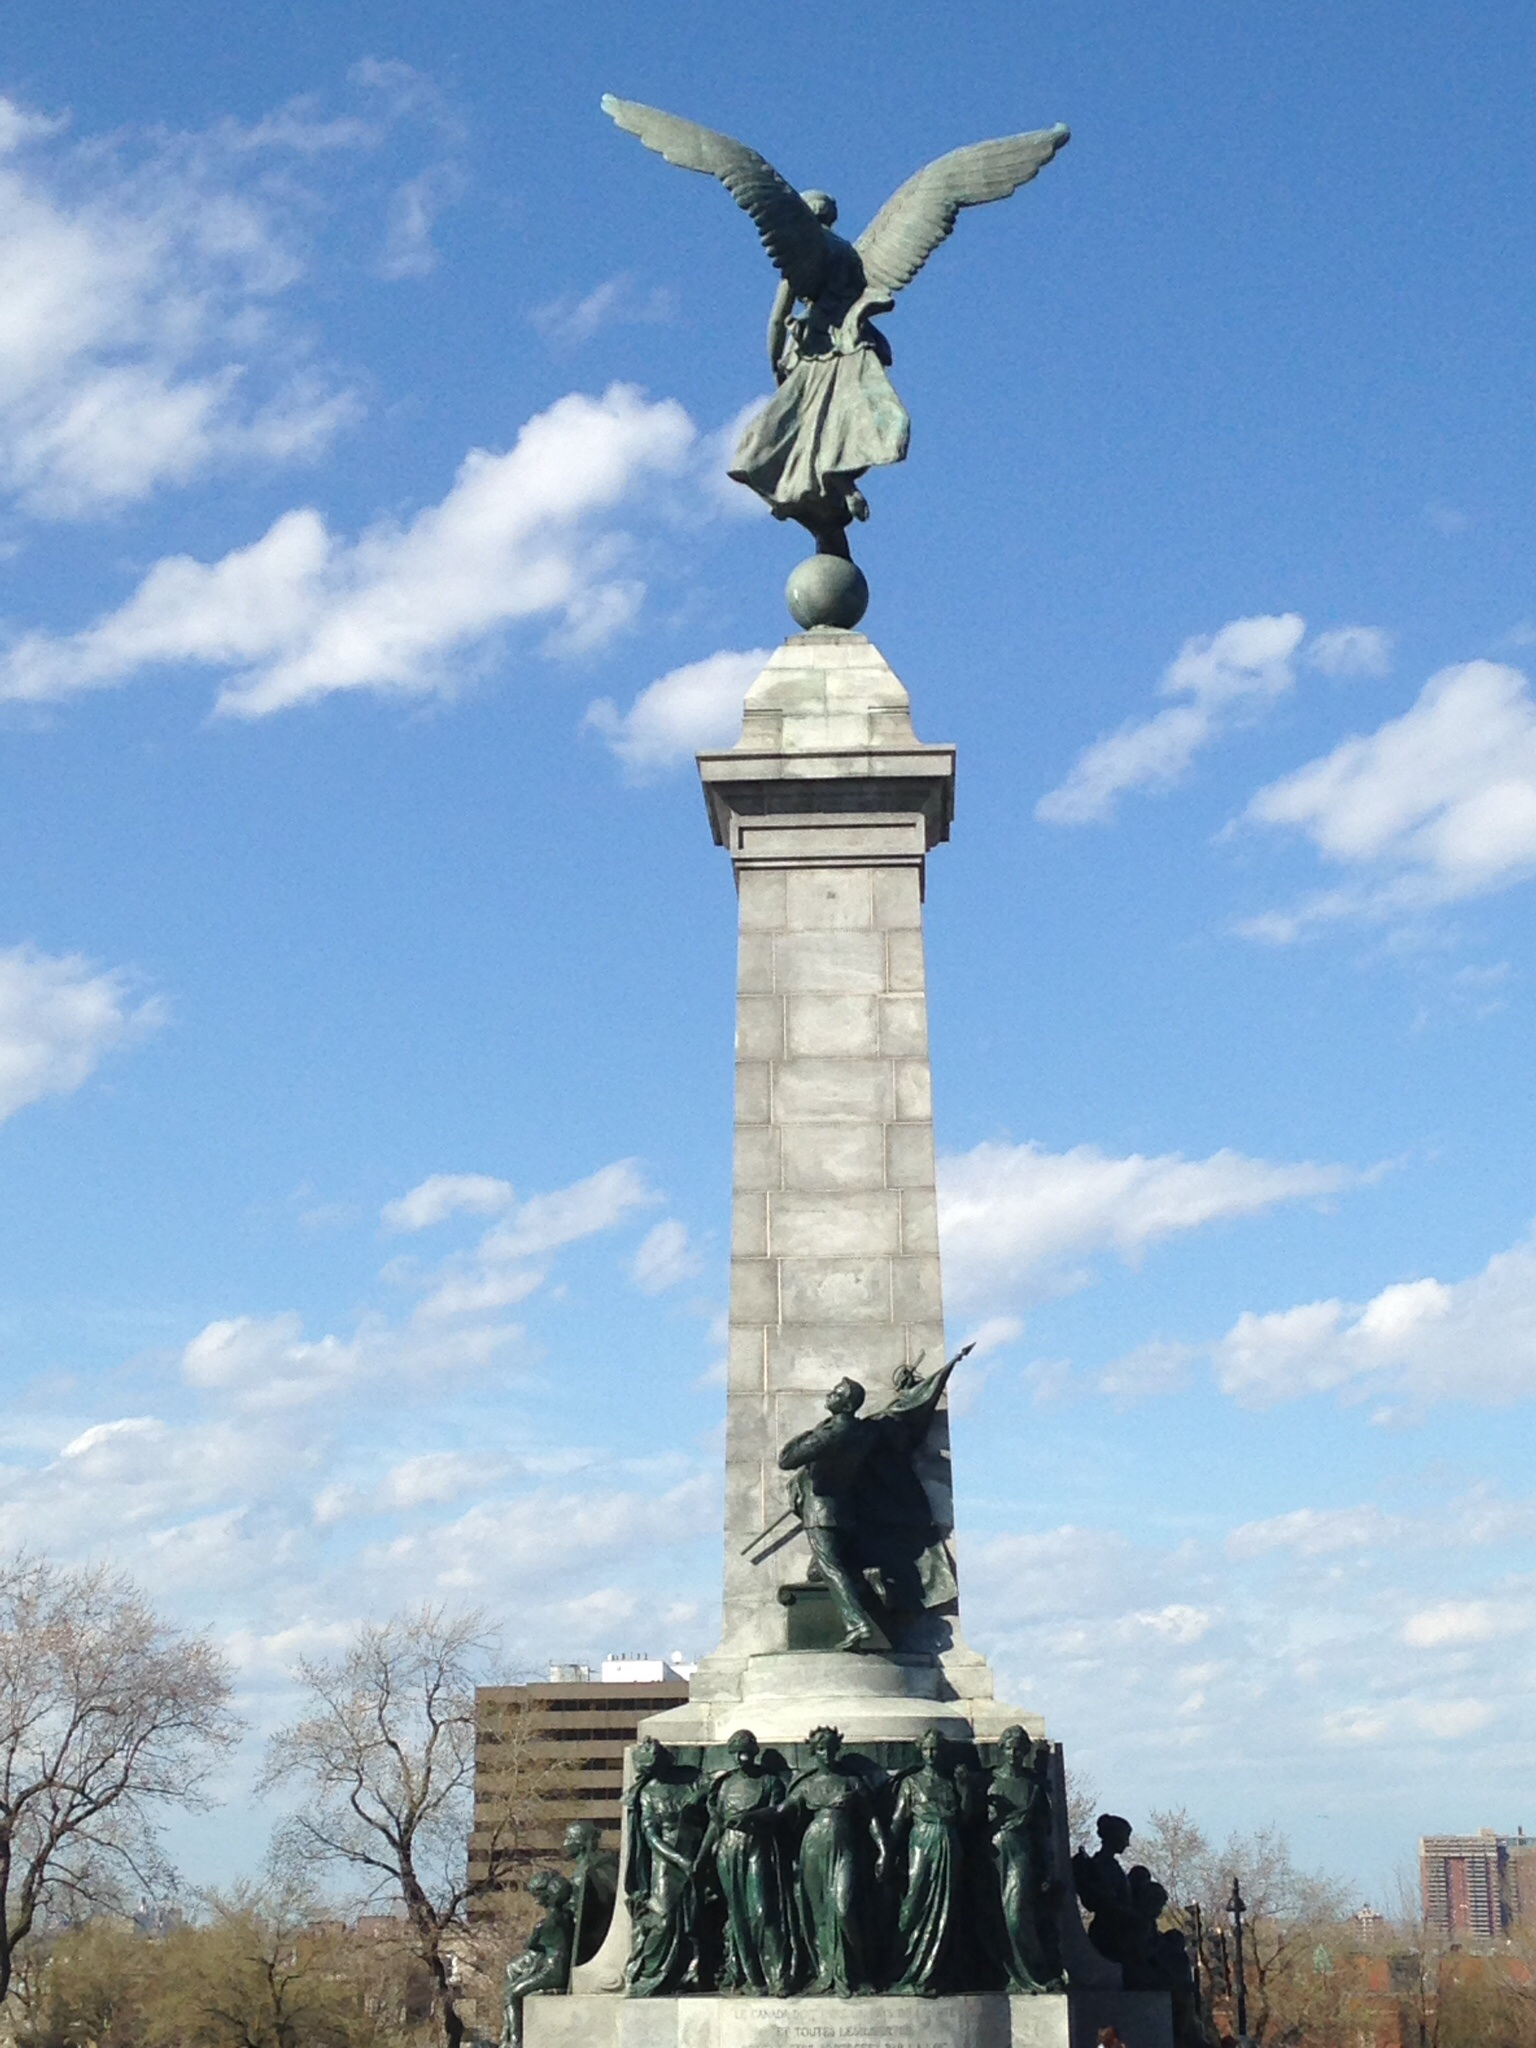 Back of the George-Étienne Cartier statue